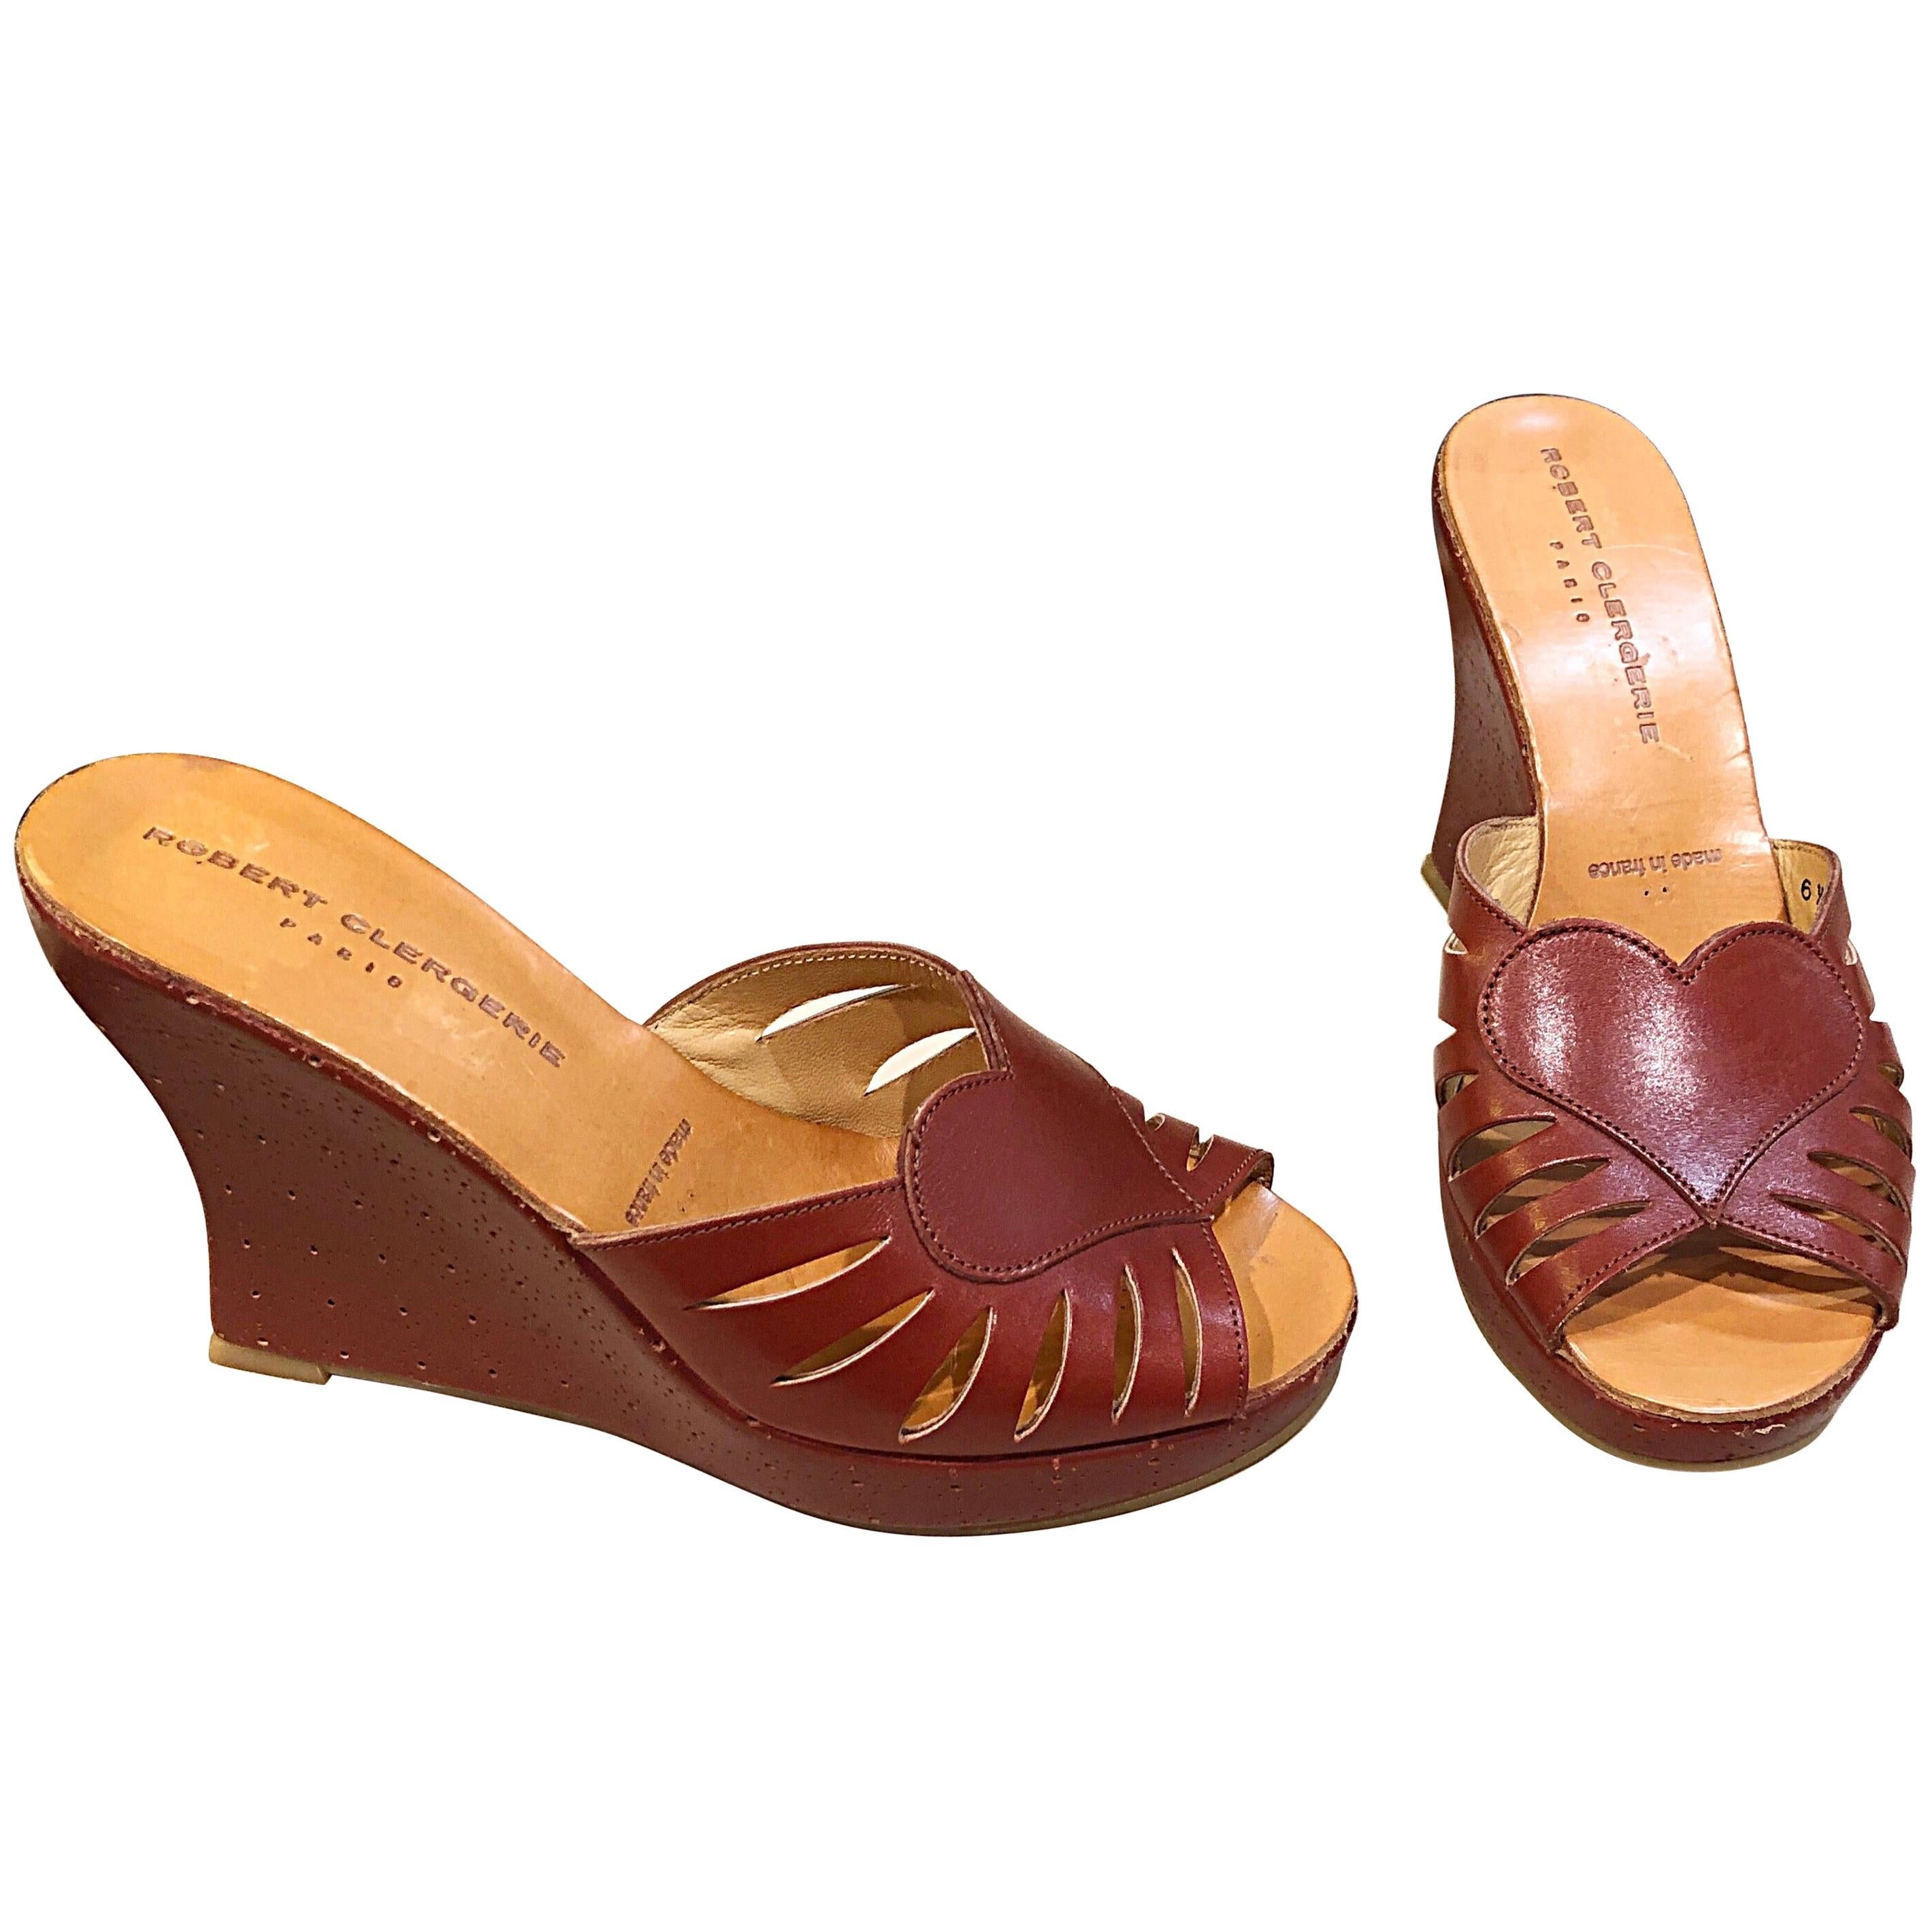 New Robert Clergerie Size 6.5 1990s Cordovan Red Brown Heart Slides Wedges Shoes